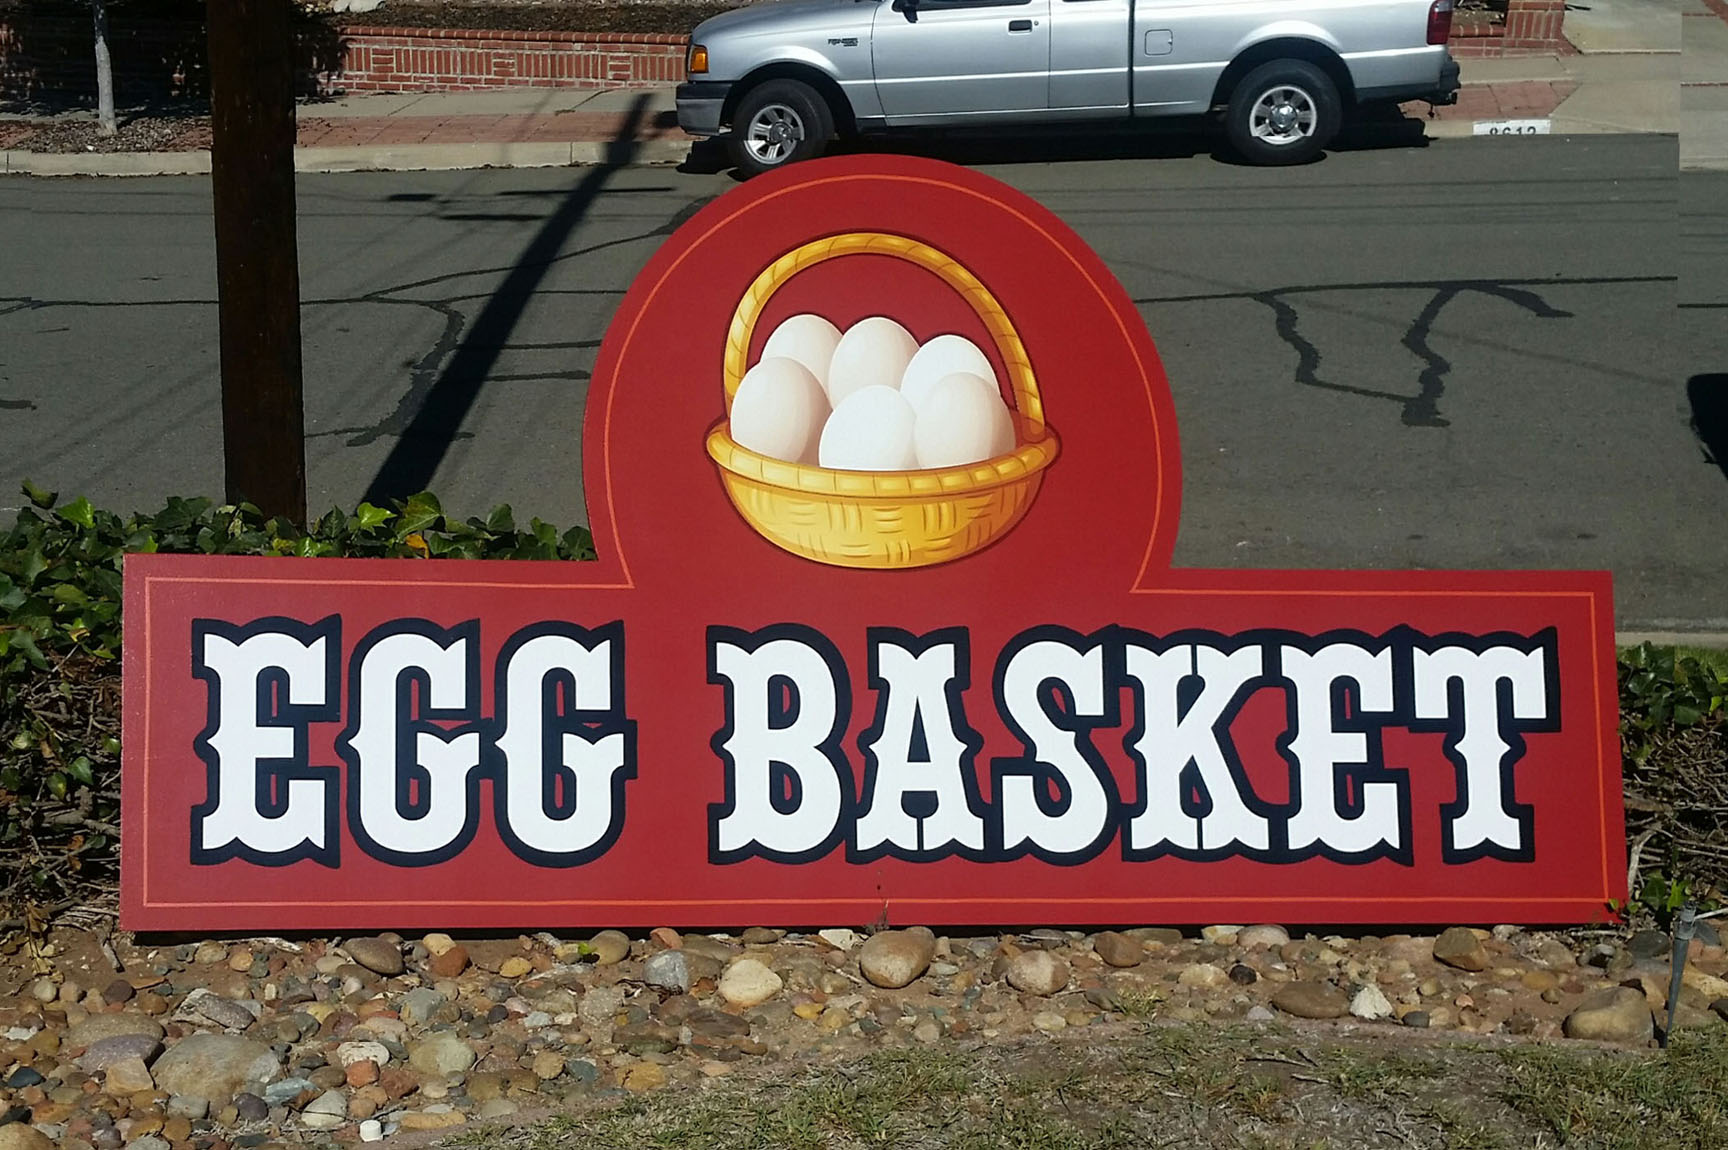 This is for their roadside egg store on Hwy 78 near Ramona